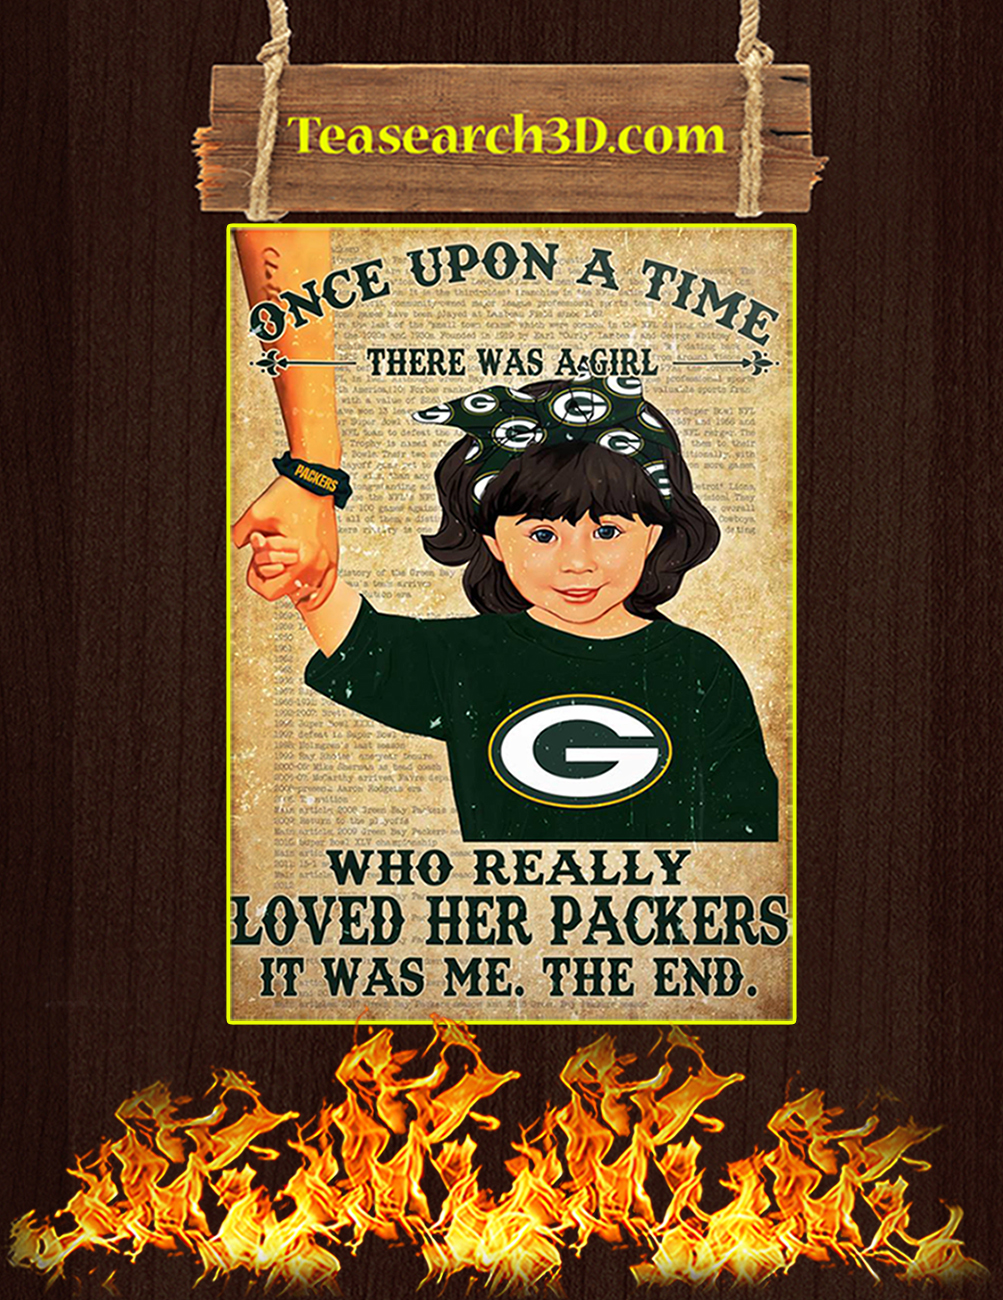 Once upon a time there was a girl who really loved her packers poster 3